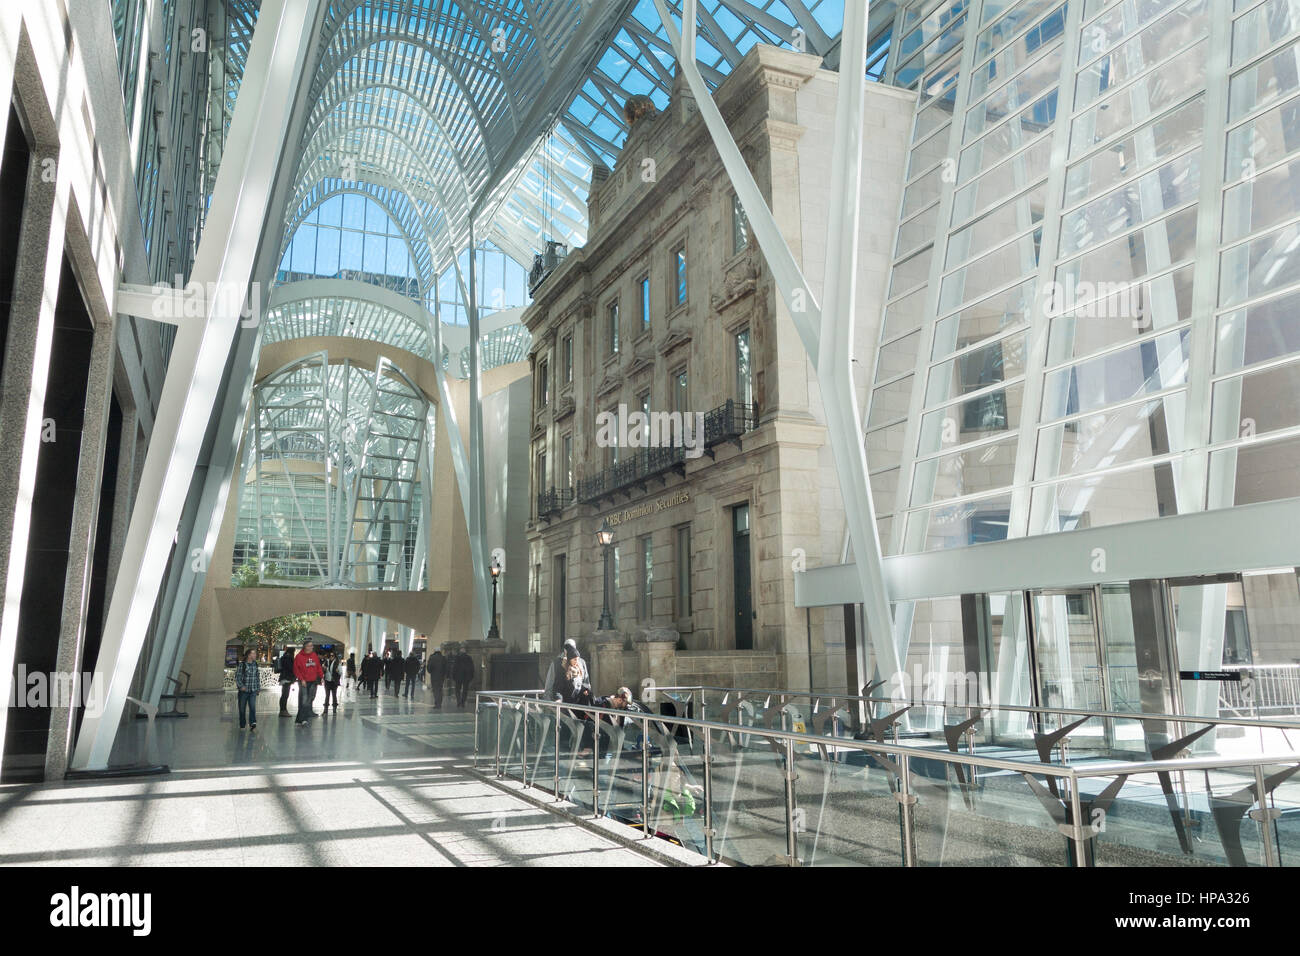 rbc-securities-building-inside-the-allen-lambert-galleria-at-brookfield-HPA326.jpg